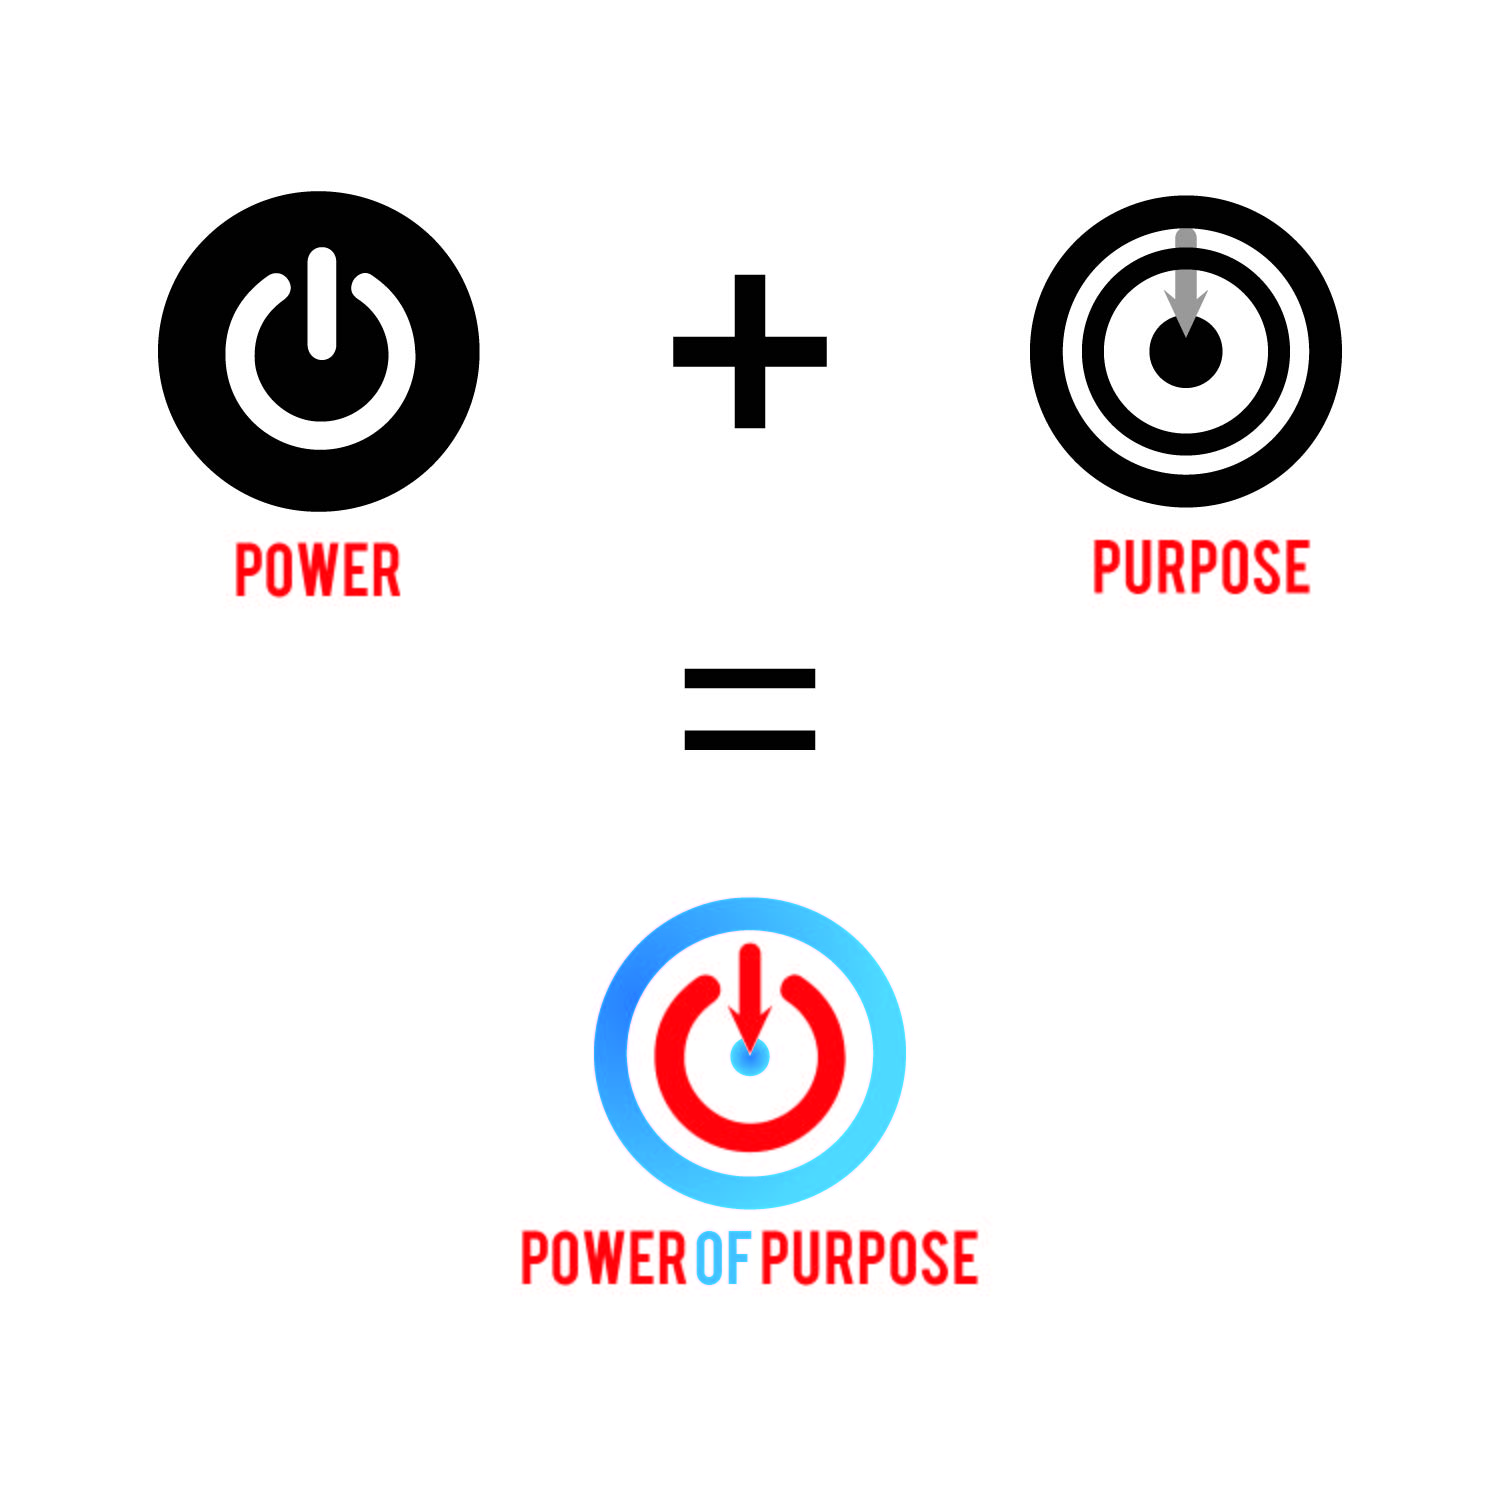 Modern Professional Non Profit Logo Design For Power Of Purpose By